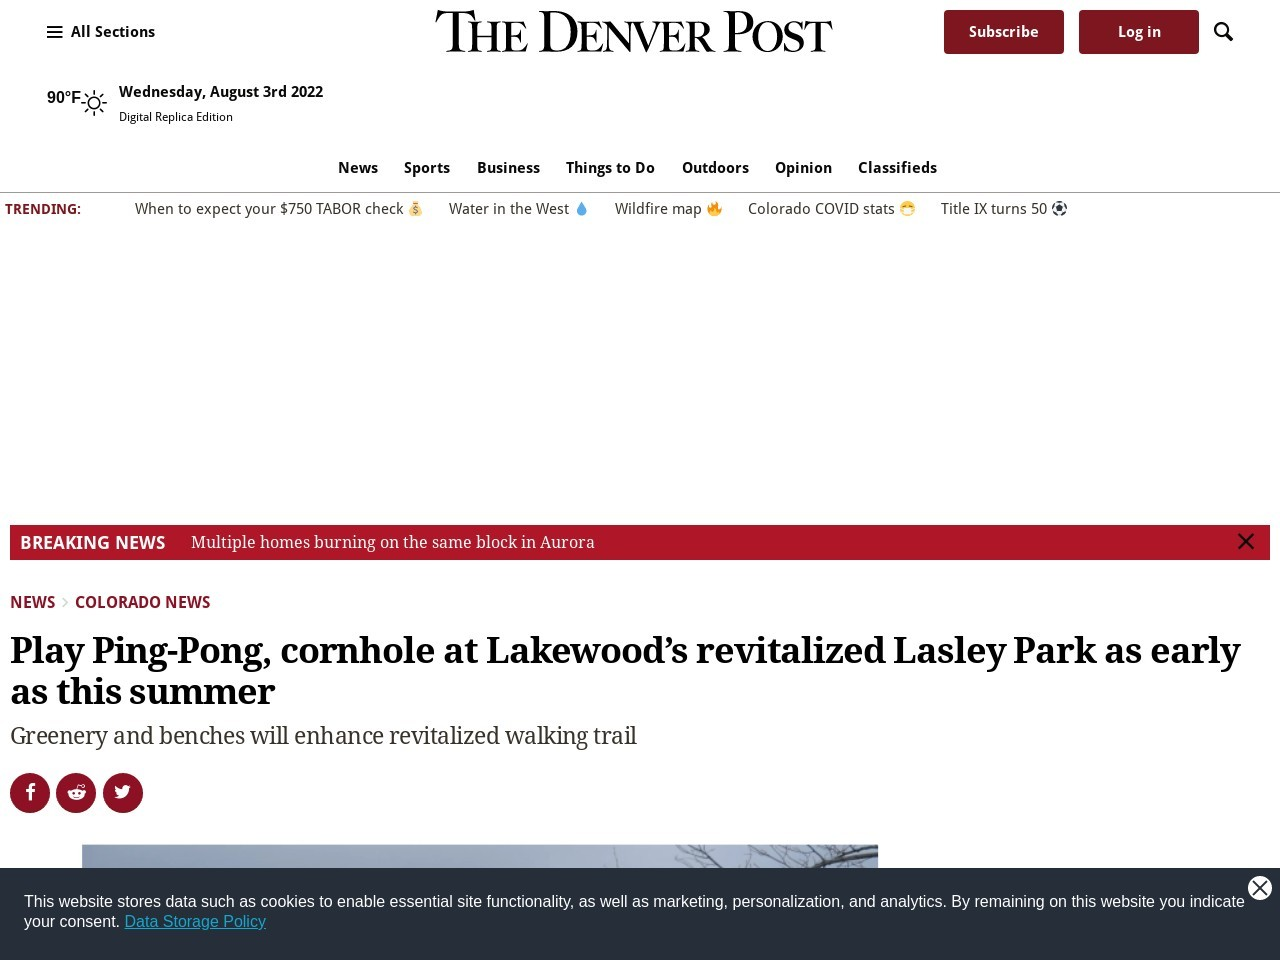 Play Ping-Pong, cornhole at Lakewood's revitalized Lasley Park as early as this summer